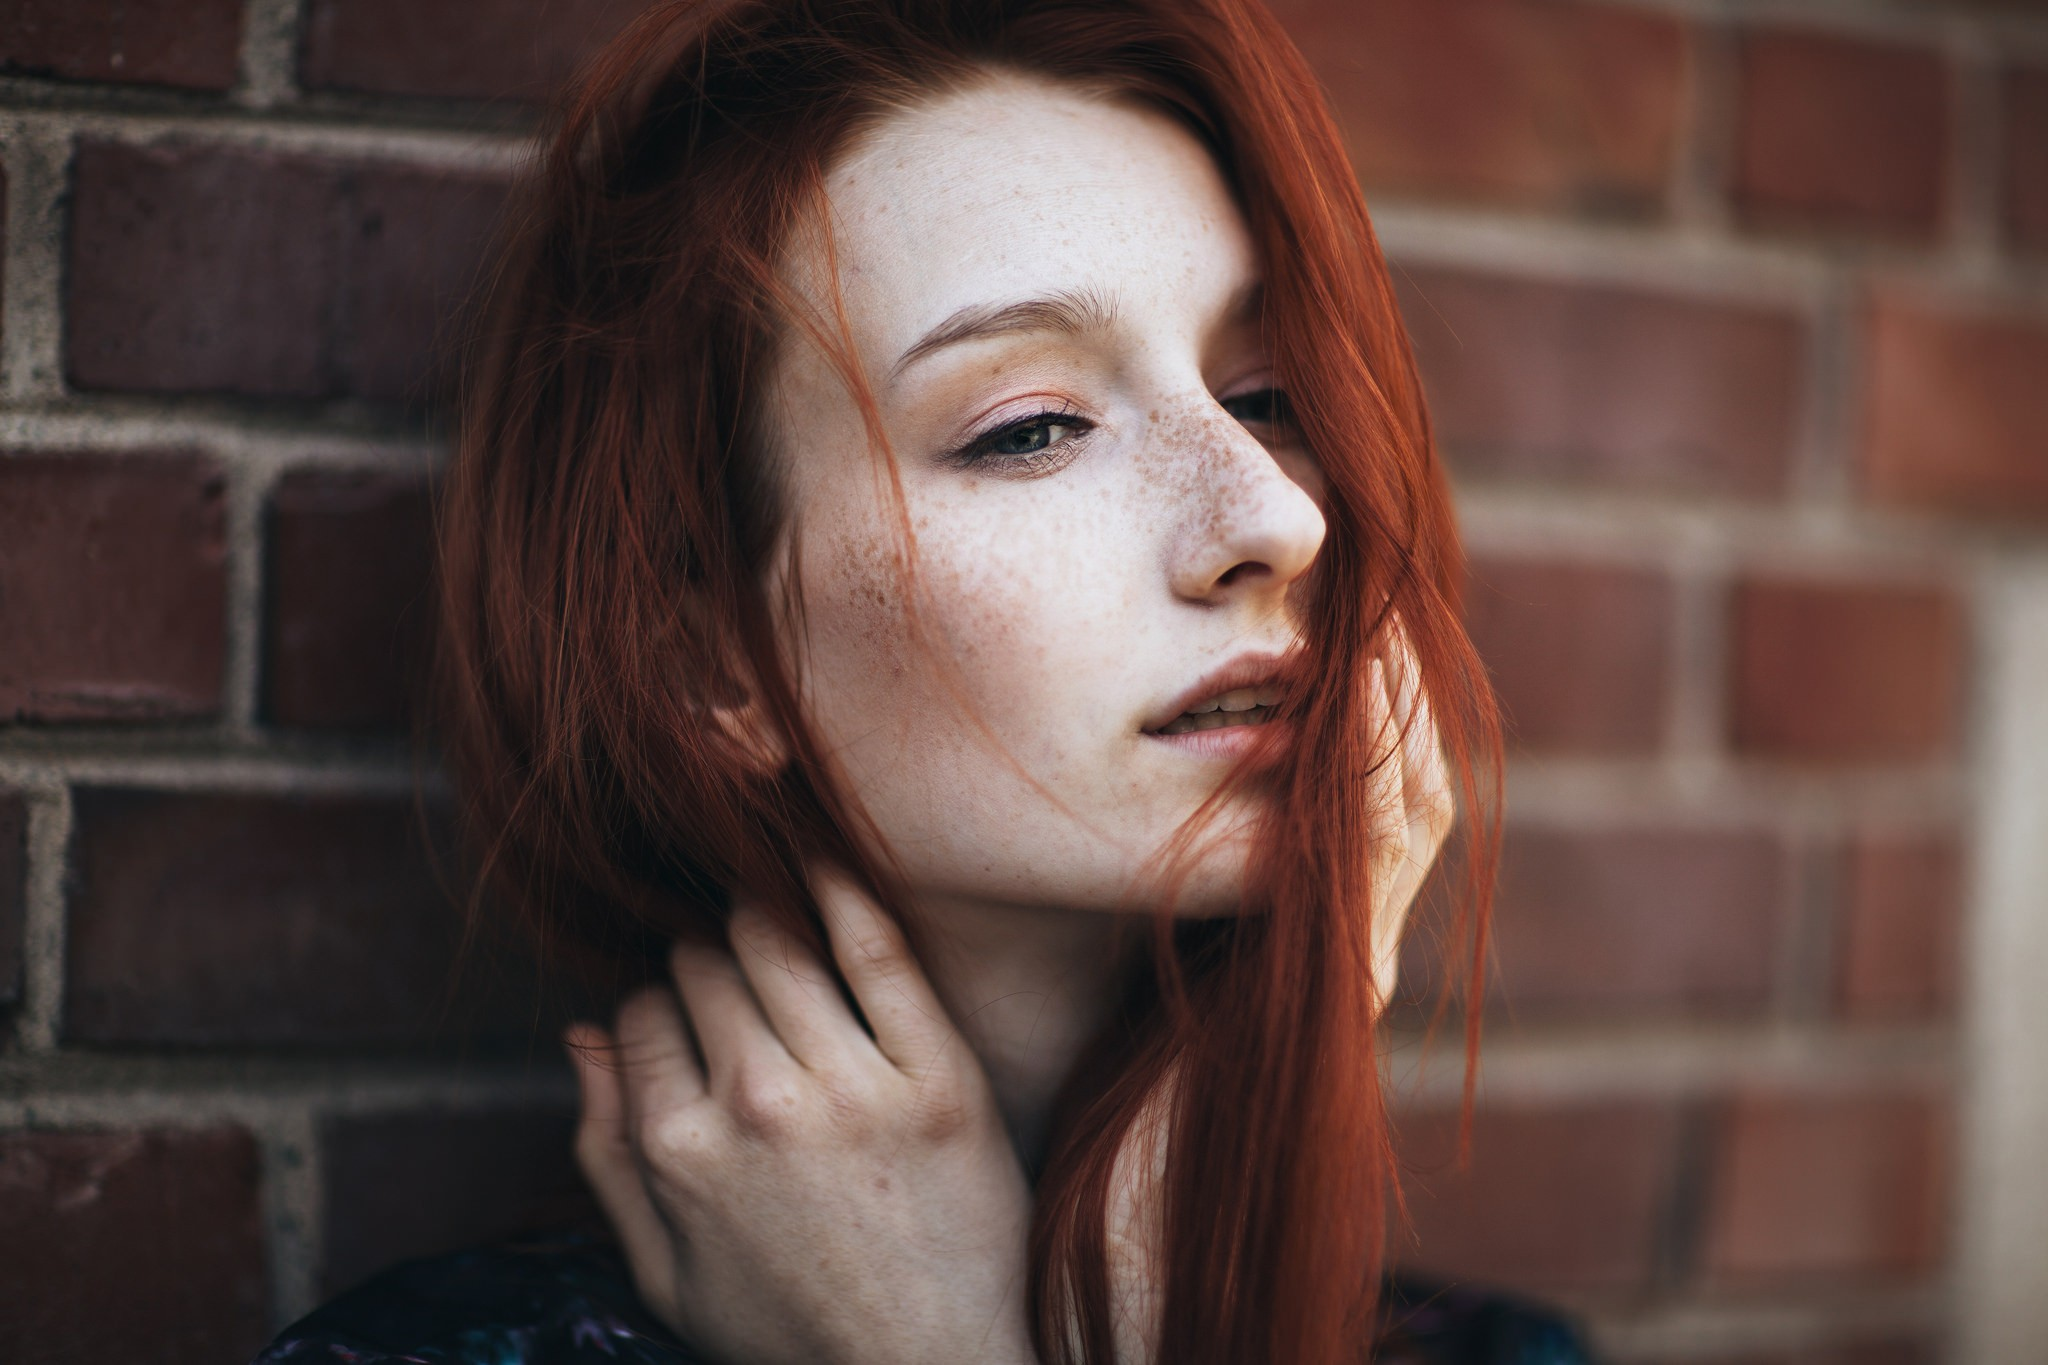 People 2048x1365 women redhead bricks freckles hair in face looking away pale open mouth face